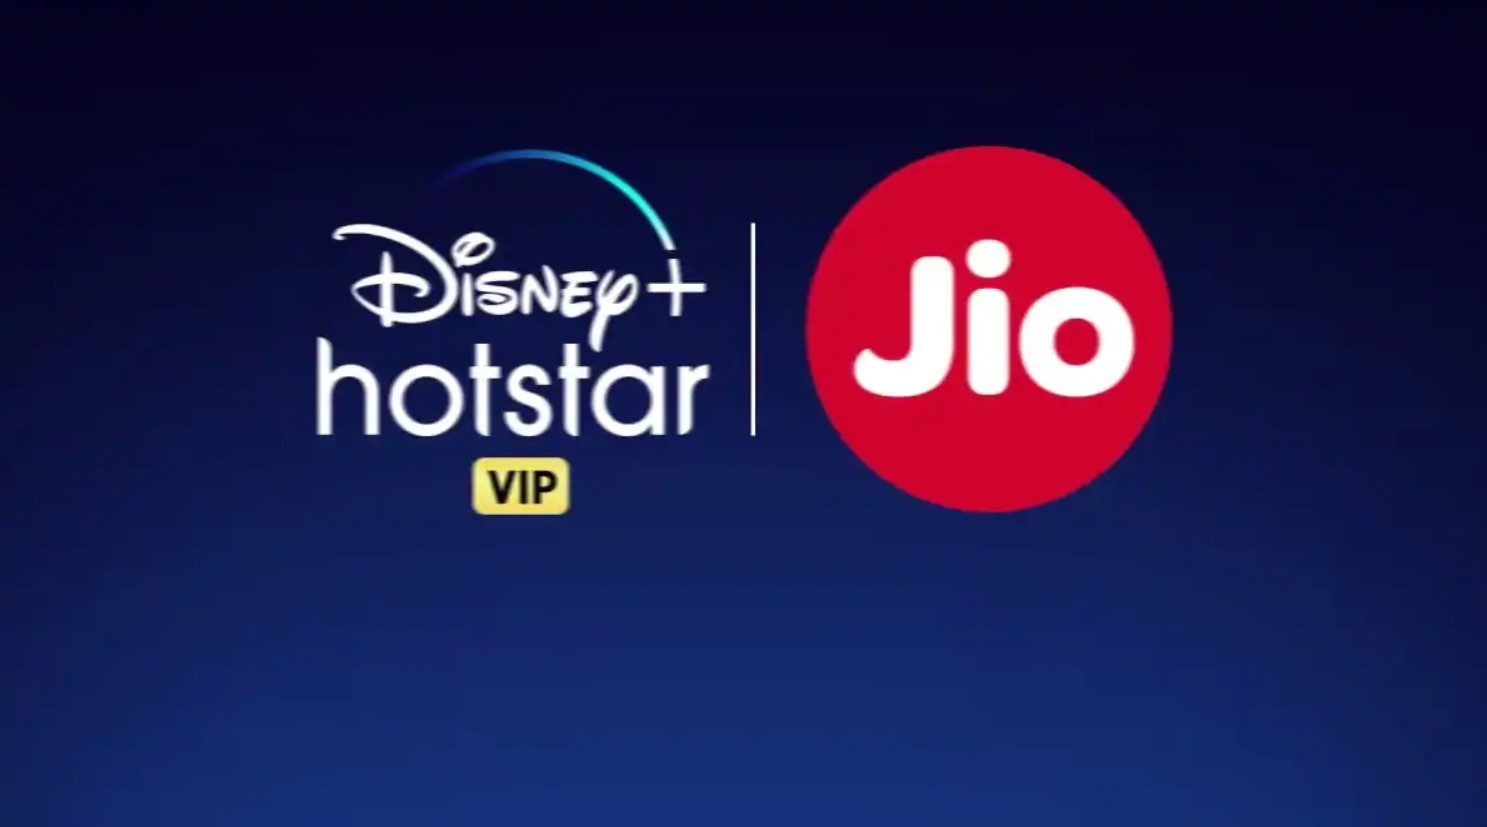 Reliance Jio Offers With Disney+ Hotstar VIP Access